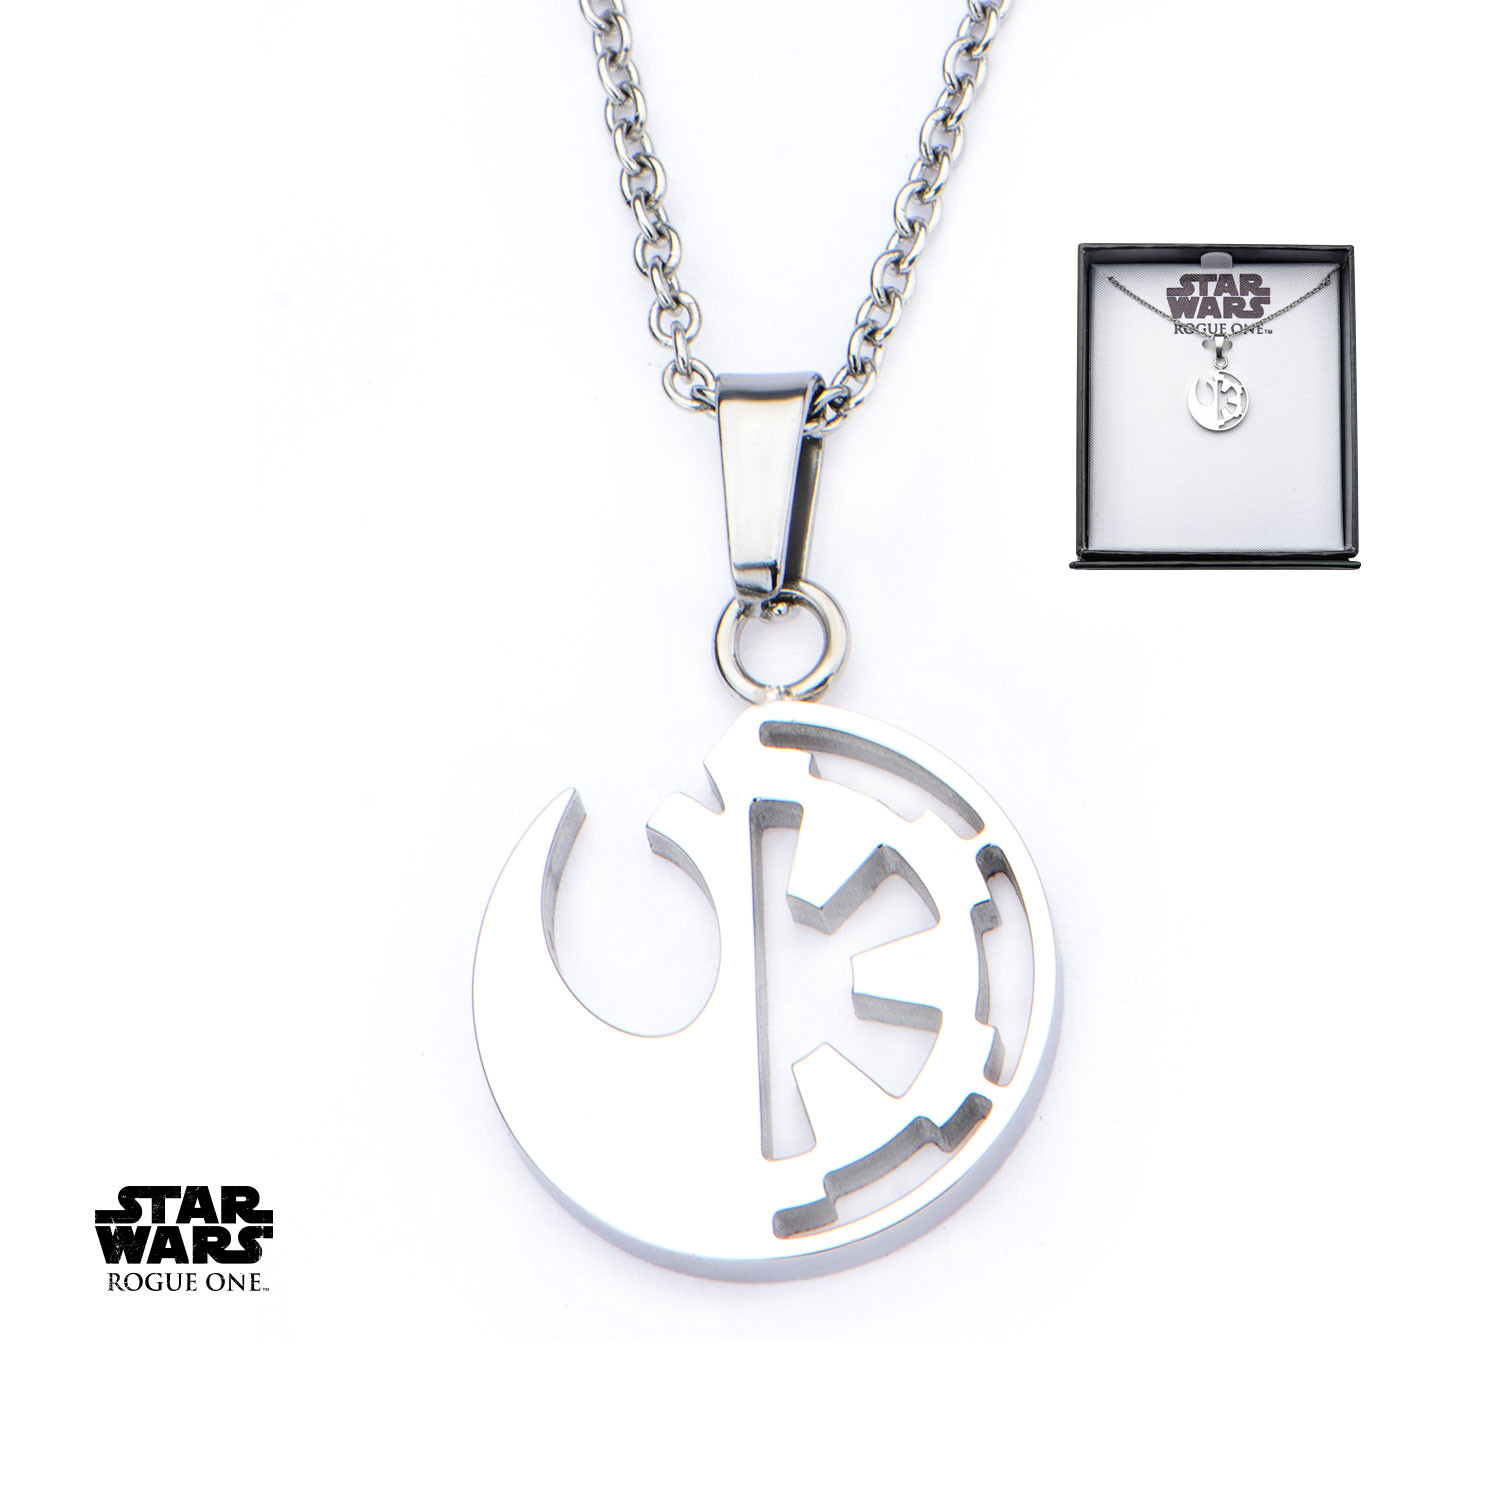 New Body Vibe X Rogue One Jewelry The